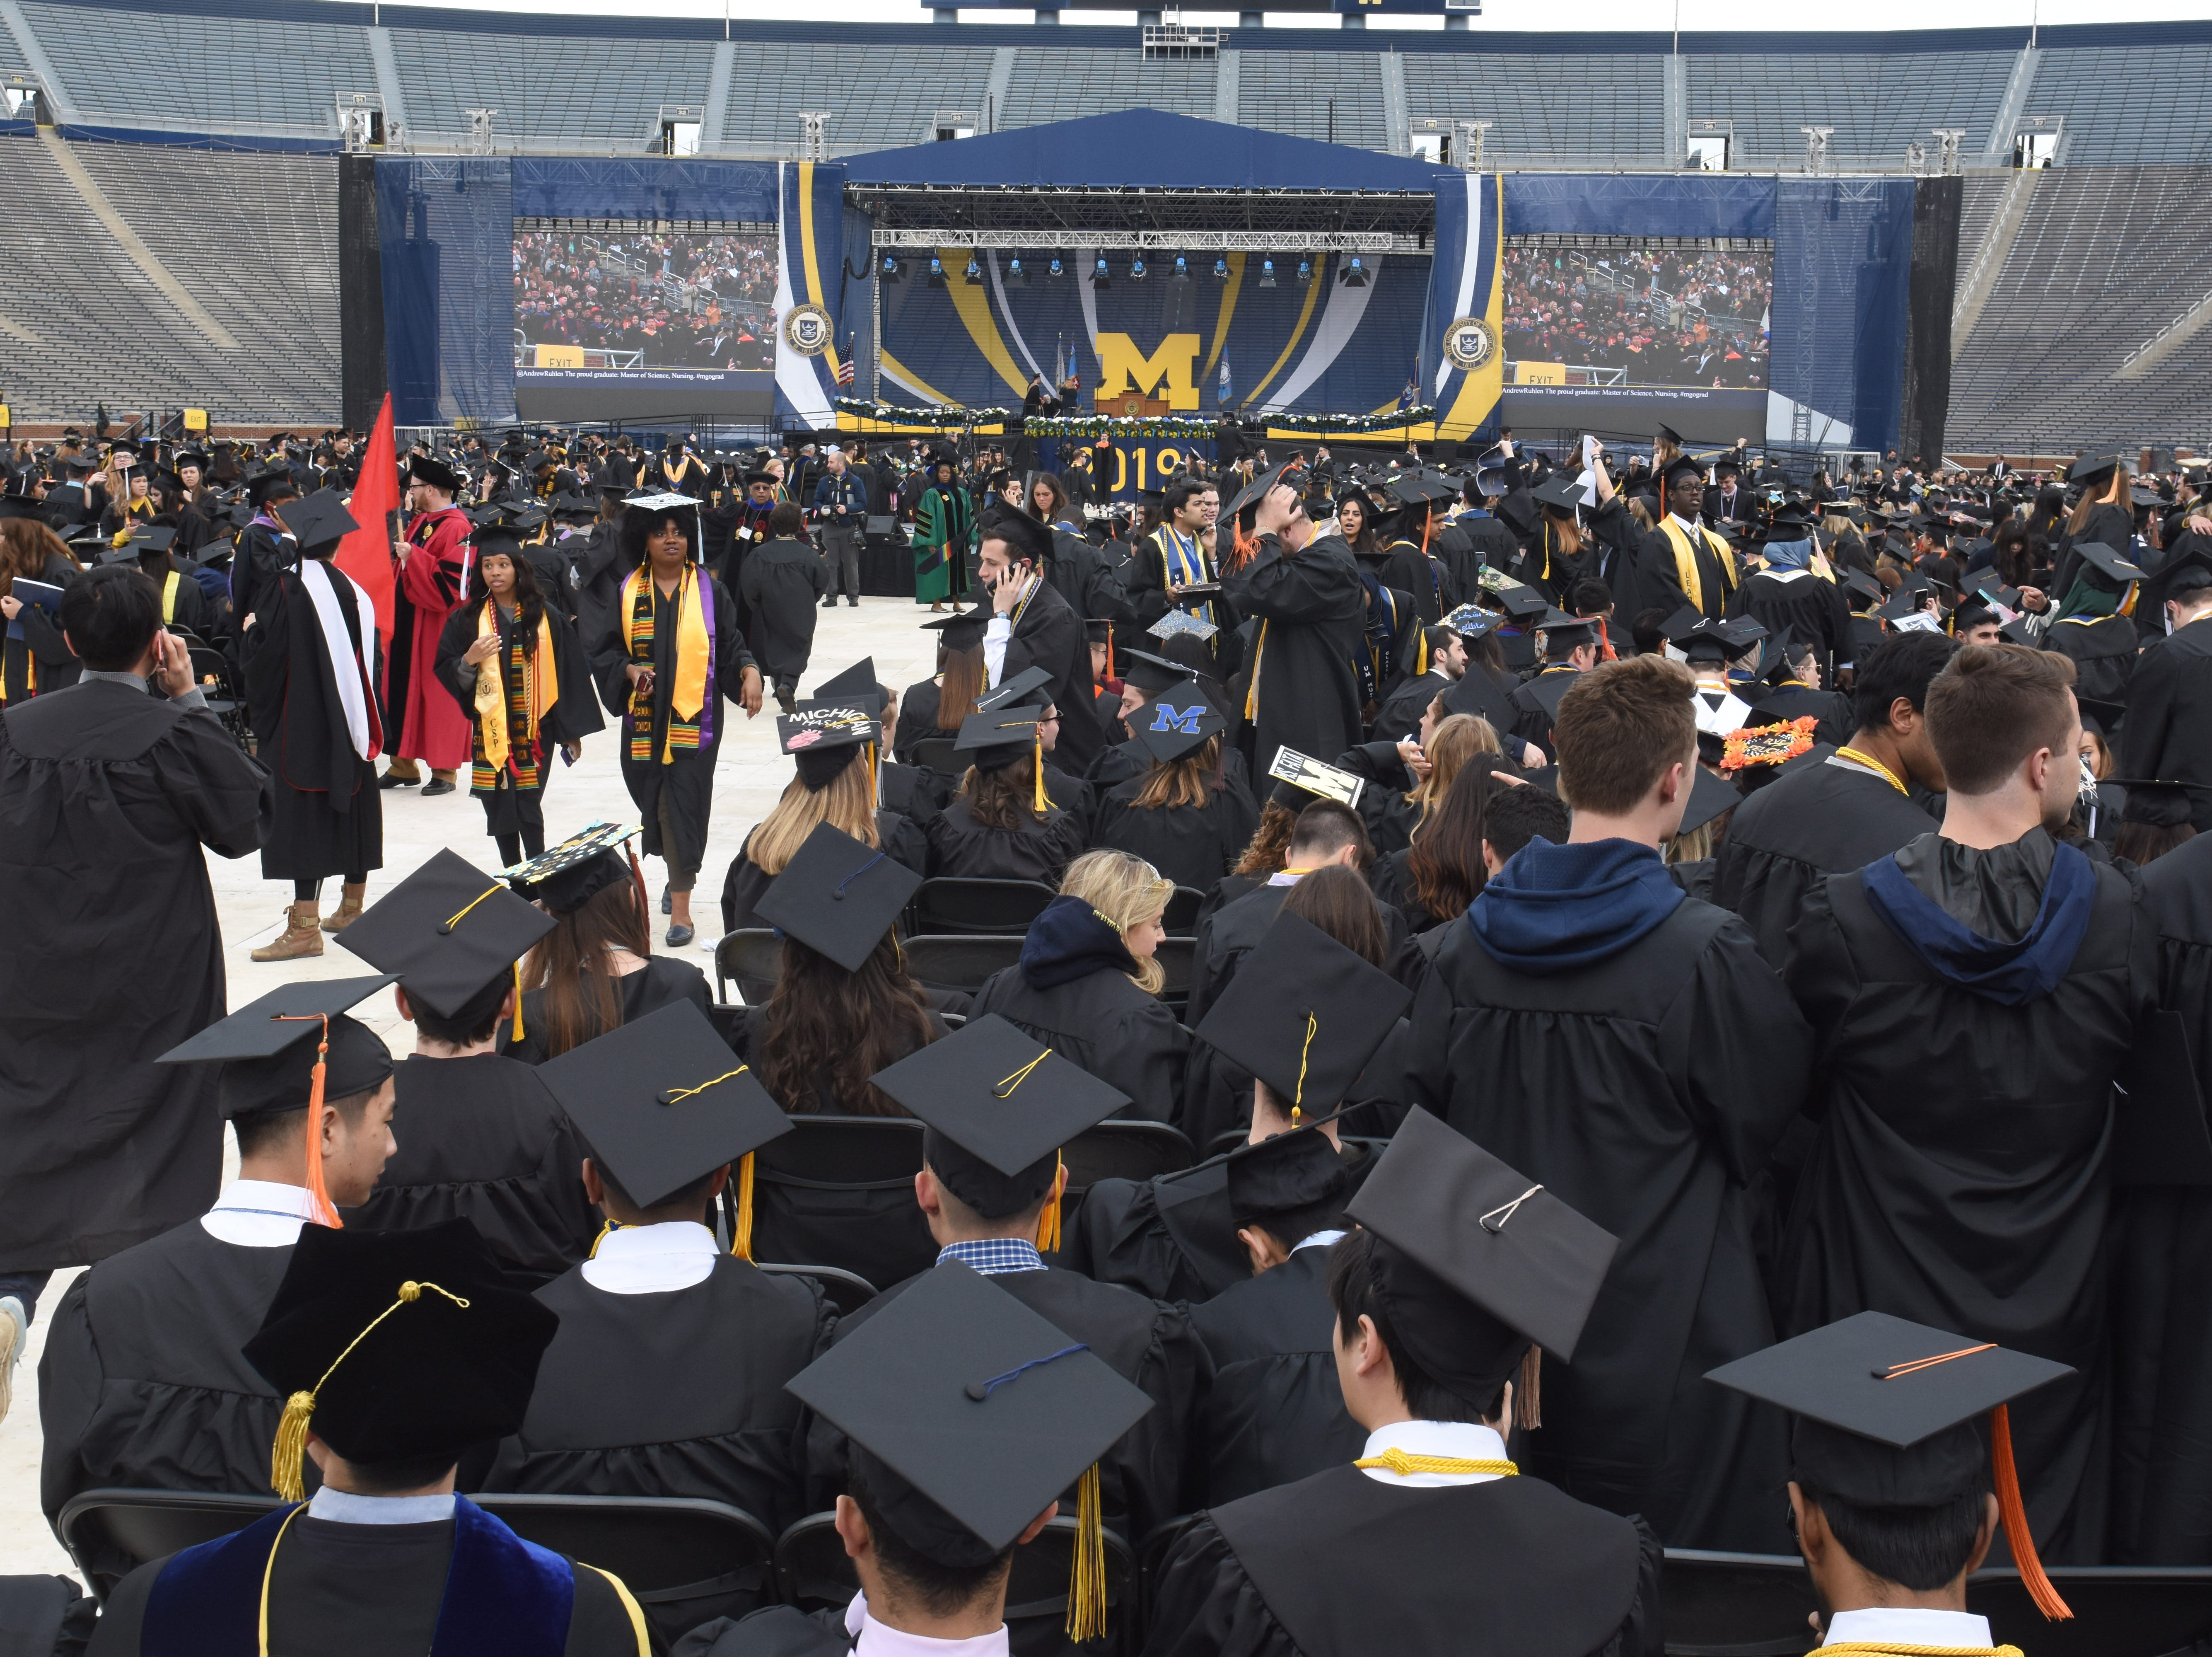 Hundreds of University of Michigan students prepare for commencement exercise.